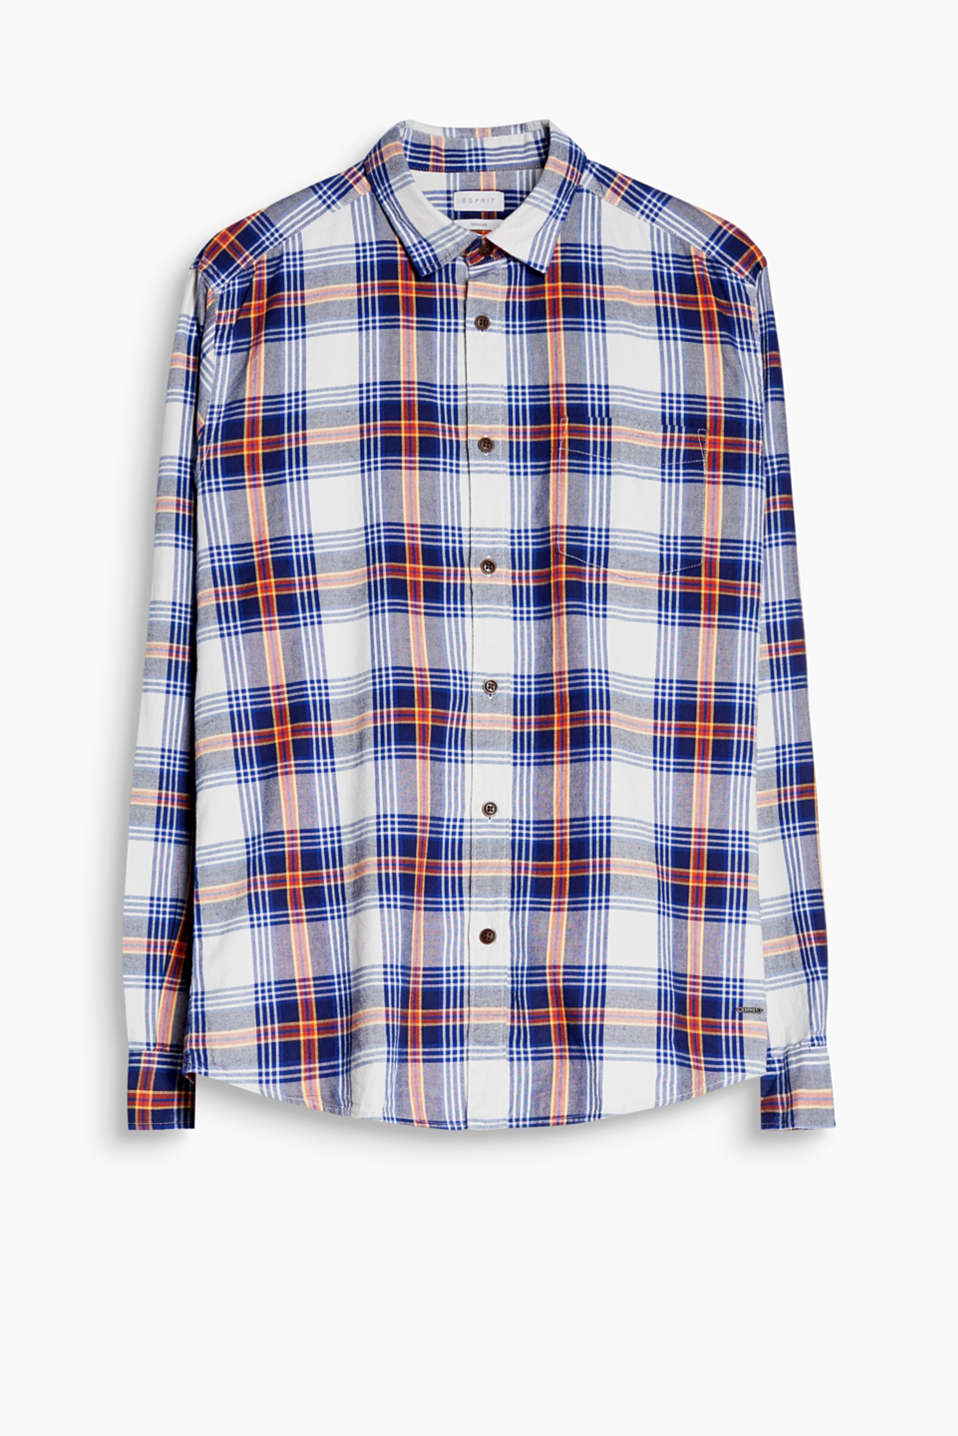 Soft and yarn dyed: shirt with a colourful, trendy check pattern, made of pure cotton